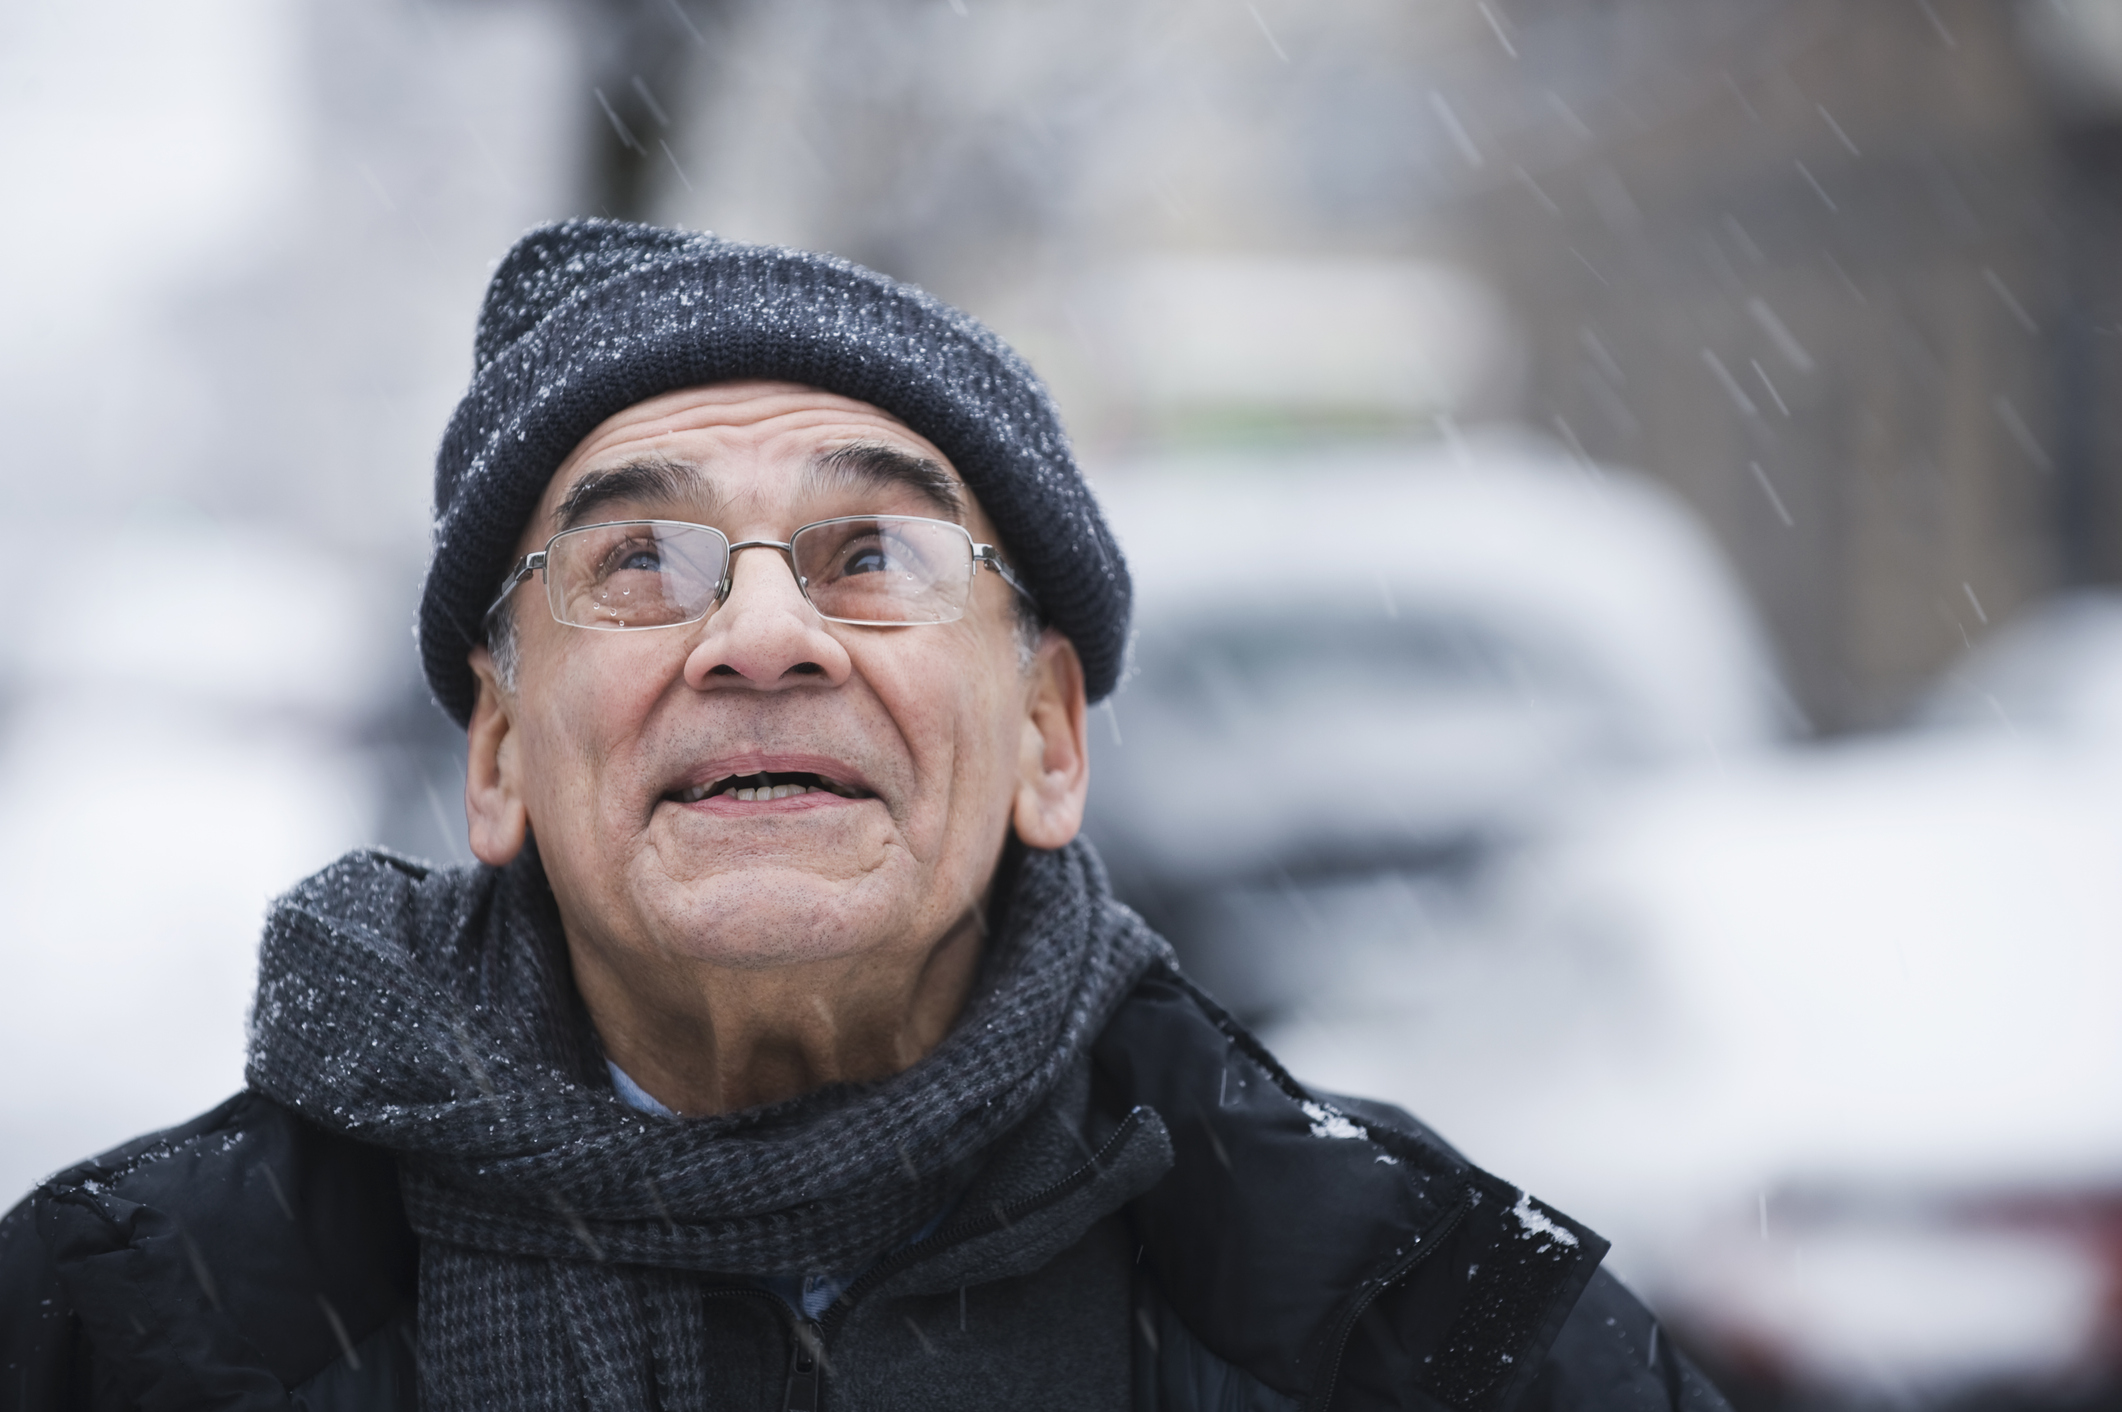 Man wearing coat in the cold, snow (Getty Images)